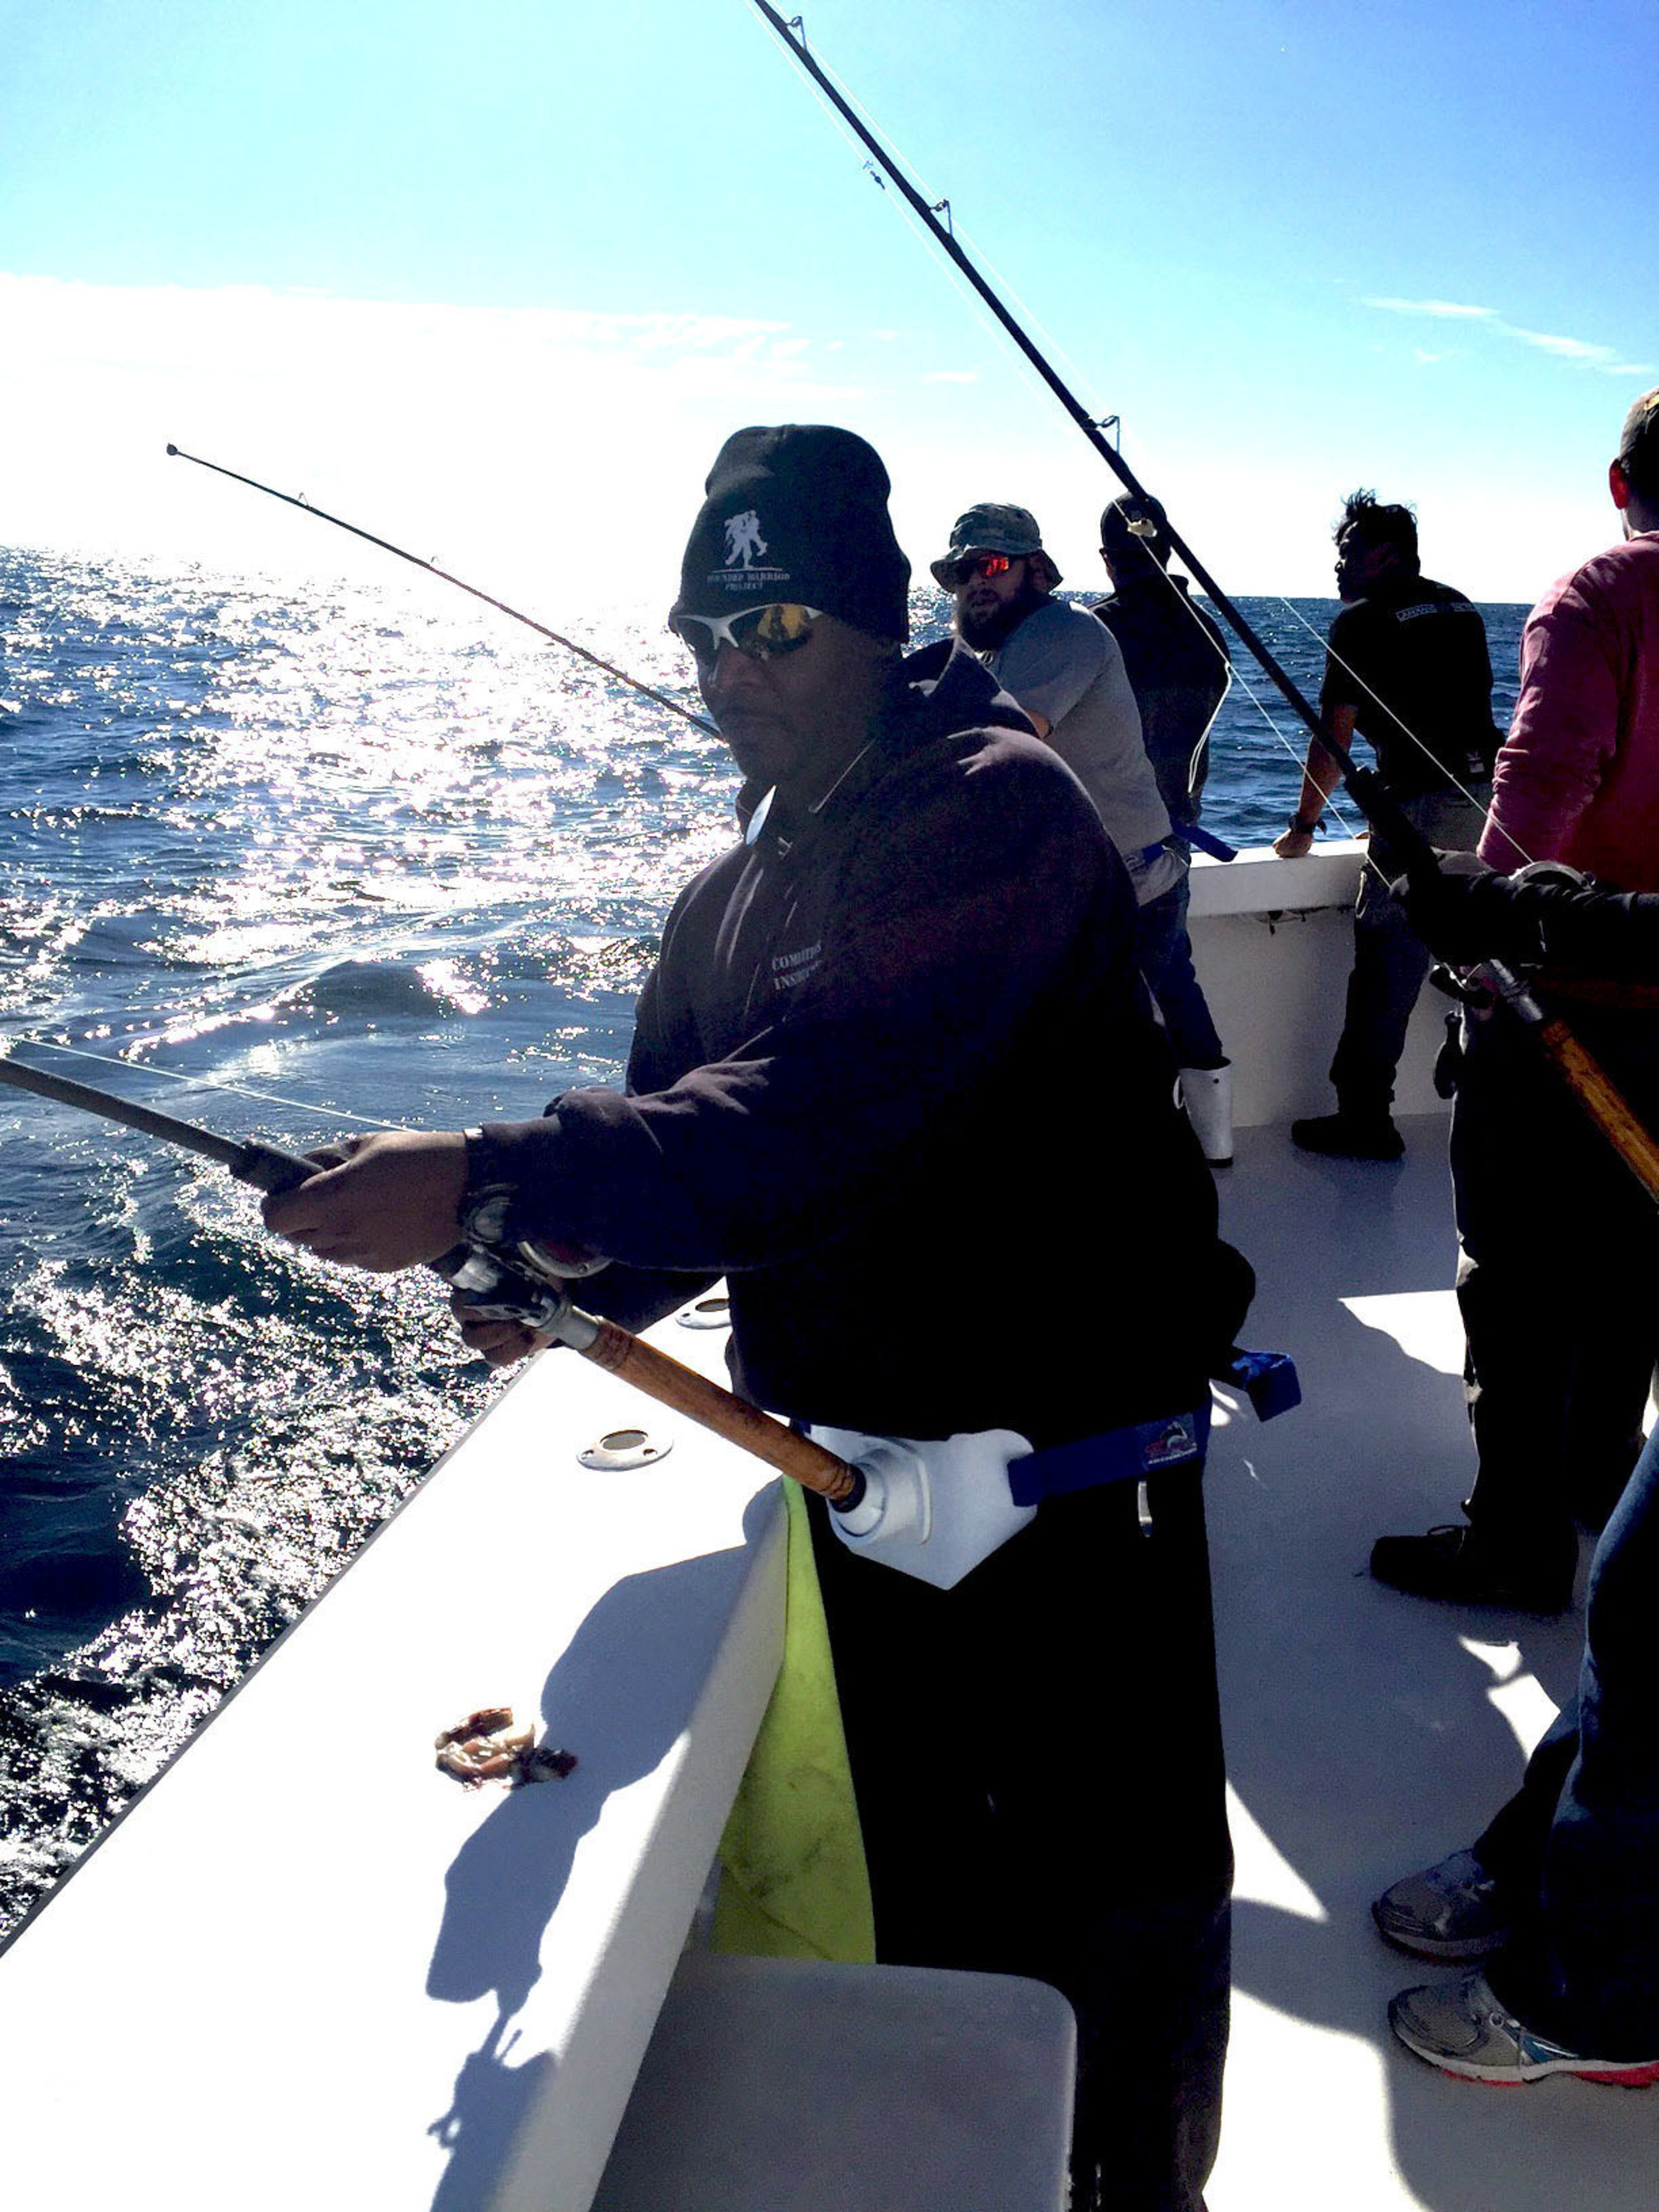 The injured veterans were responsible for catching their dinner.